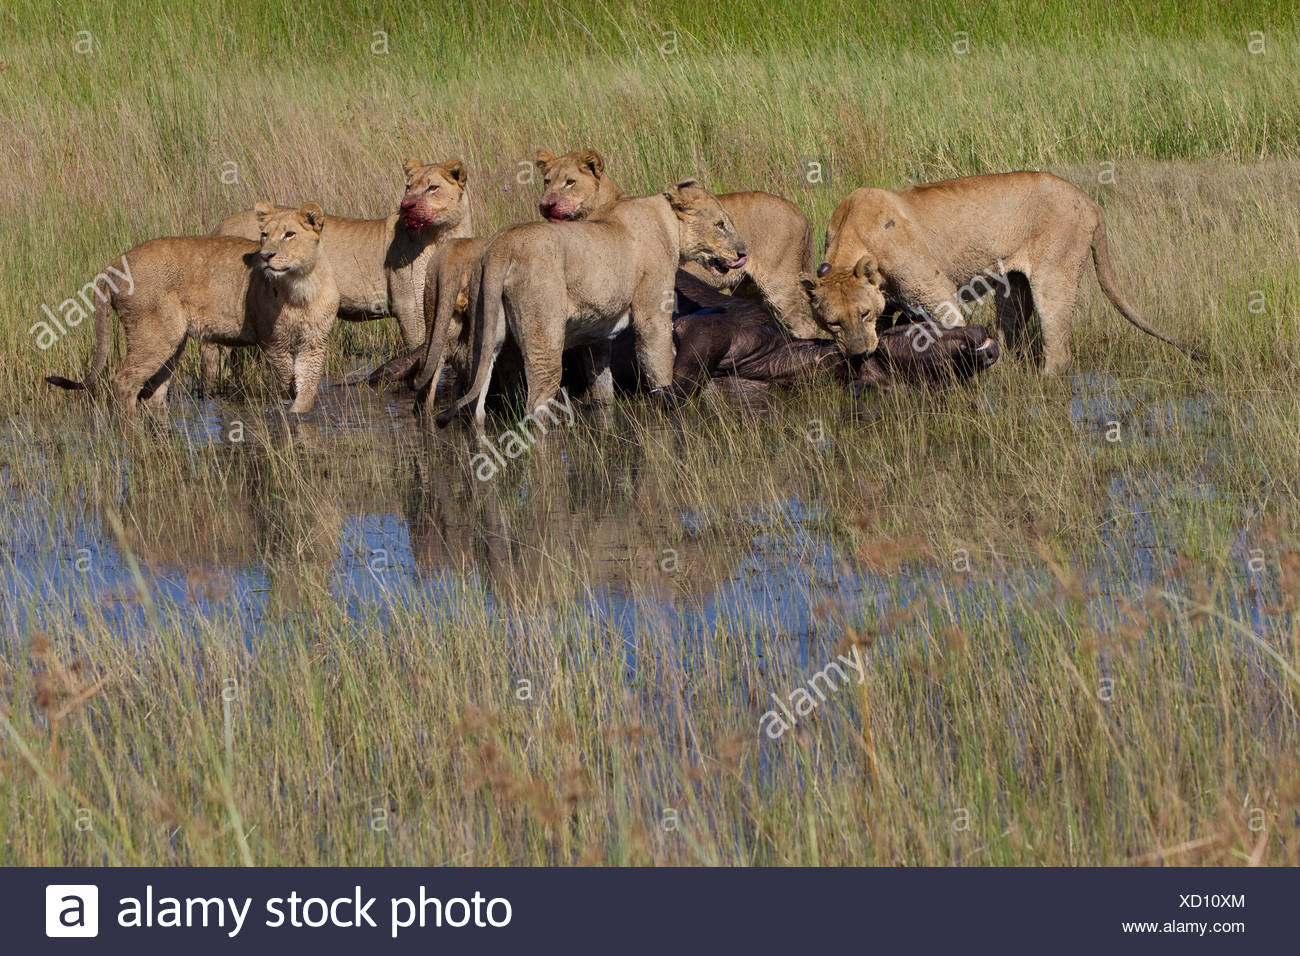 Female African lions feeding on a freshly killed Cape buffalo. Stock Photo